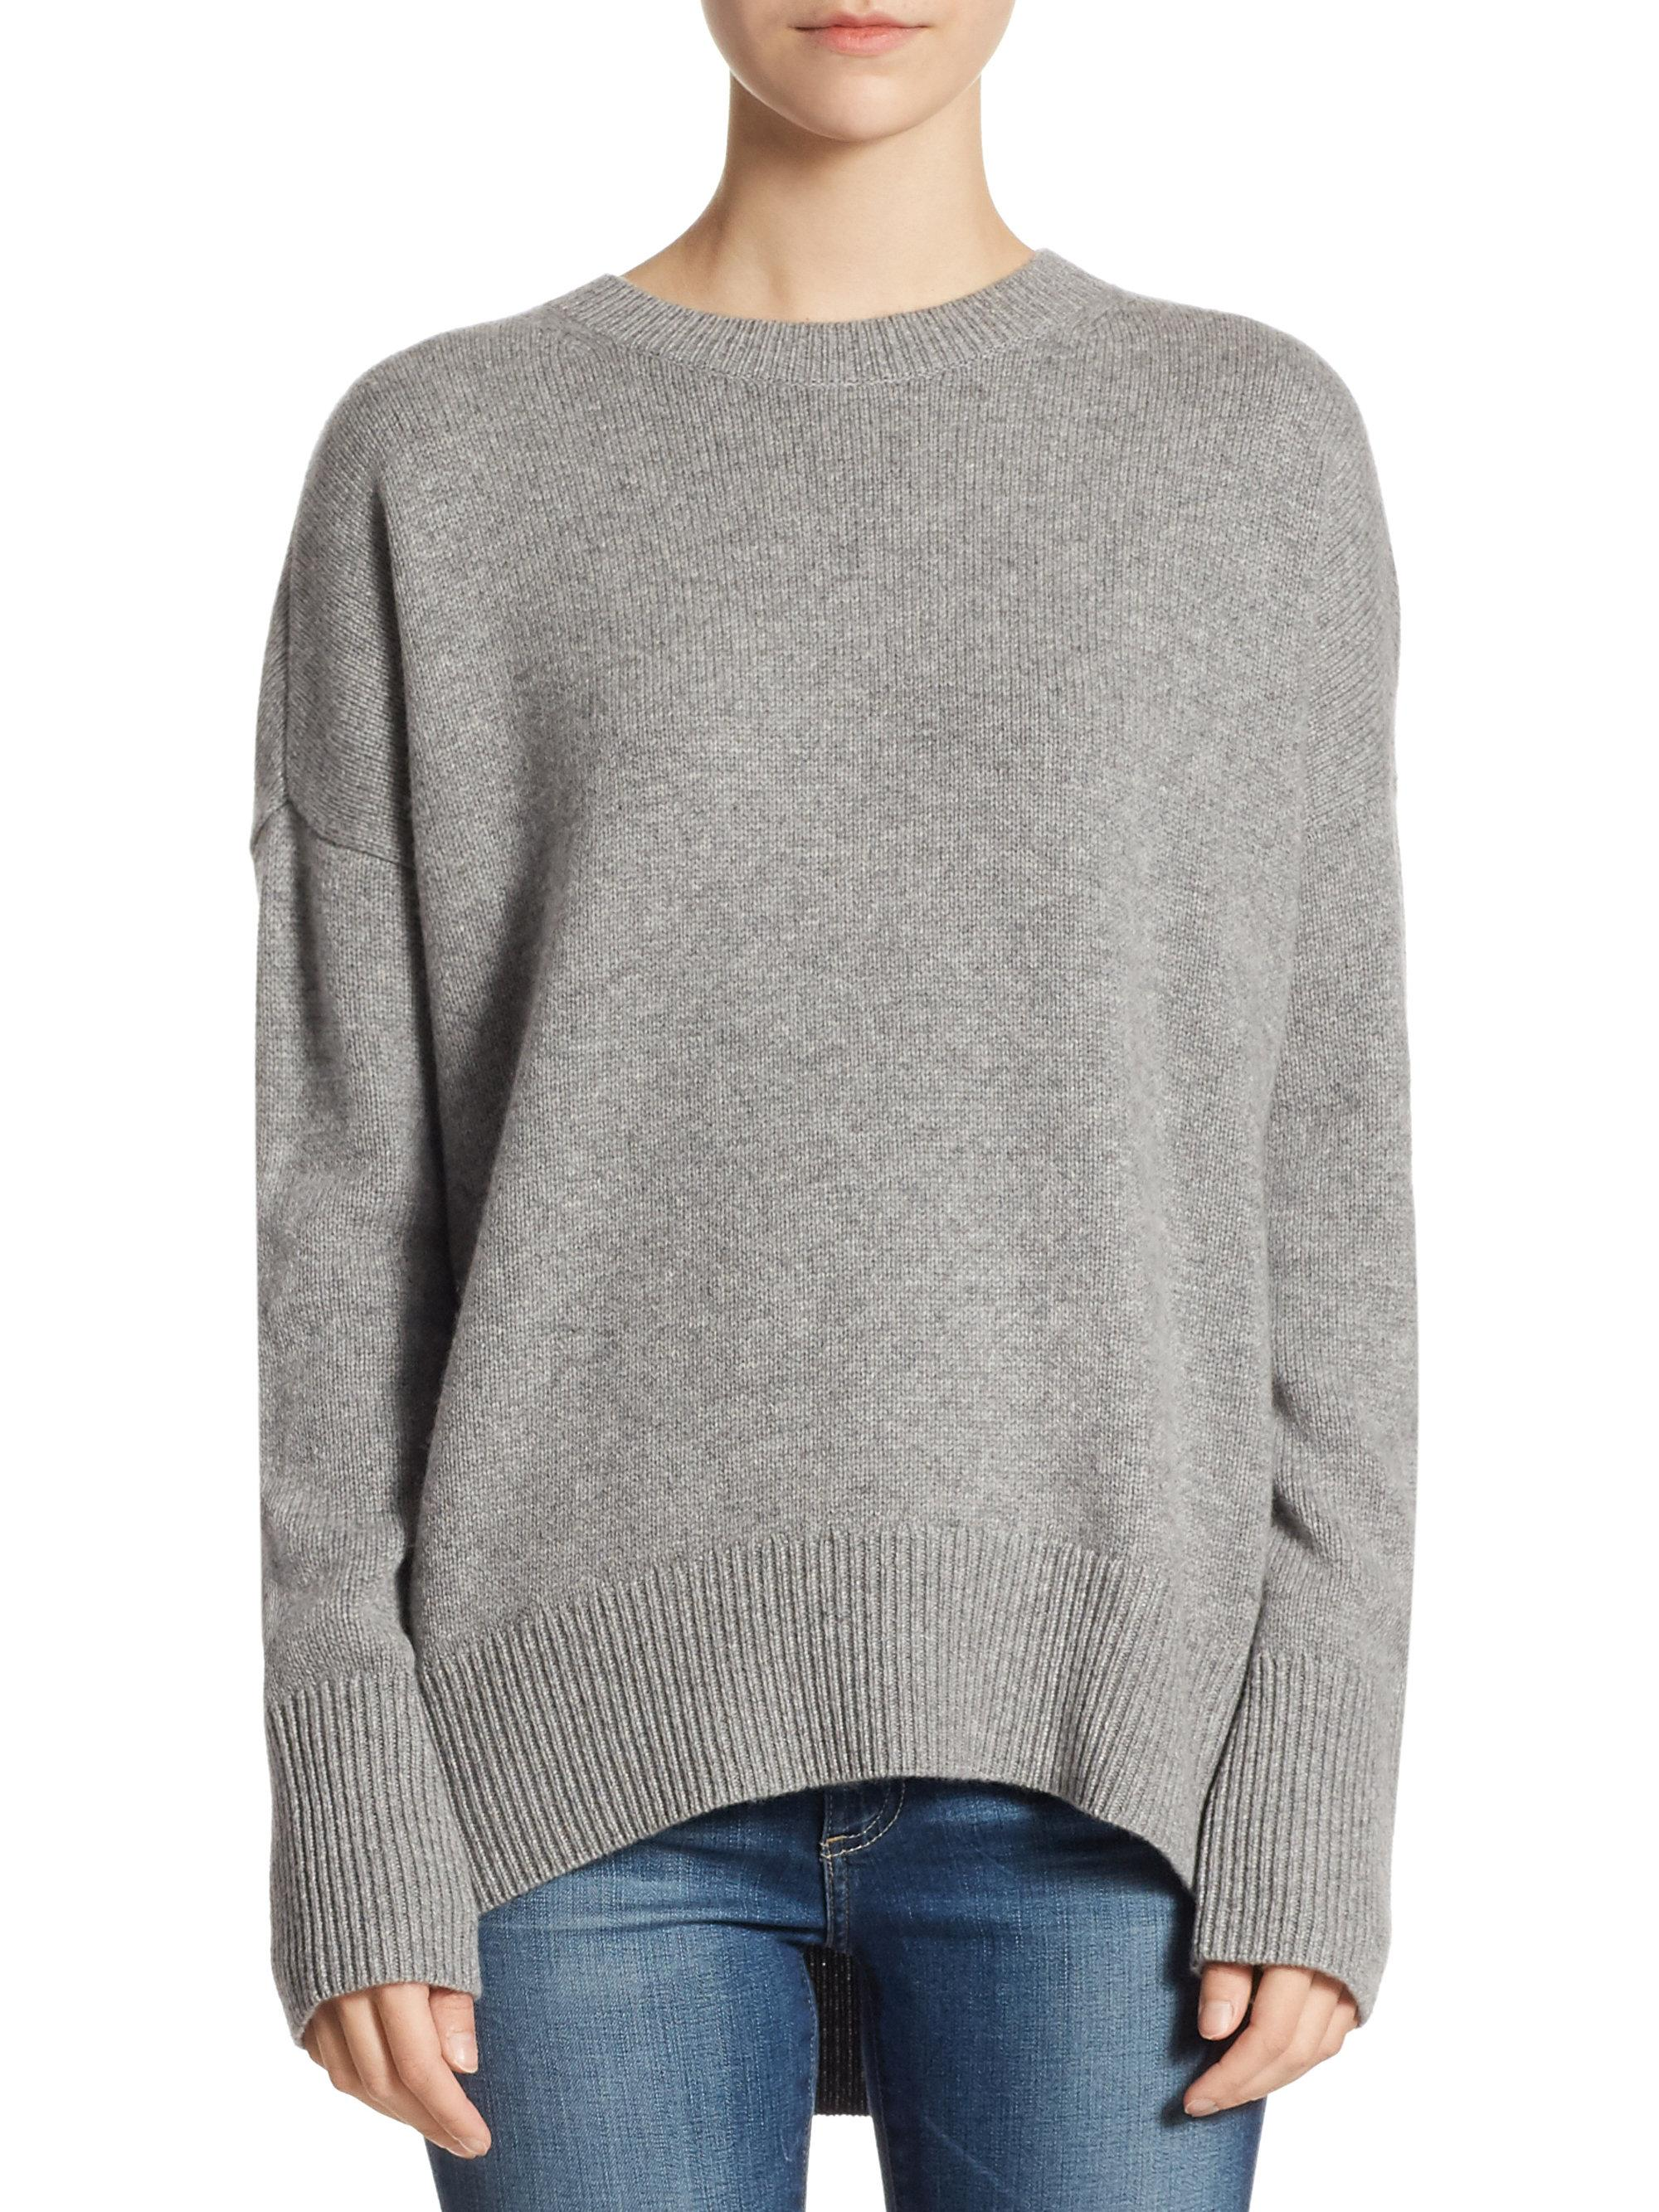 Karenia Cashmere Sweater - Gray Theory Clearance Browse Discount Outlet RzMTUp8